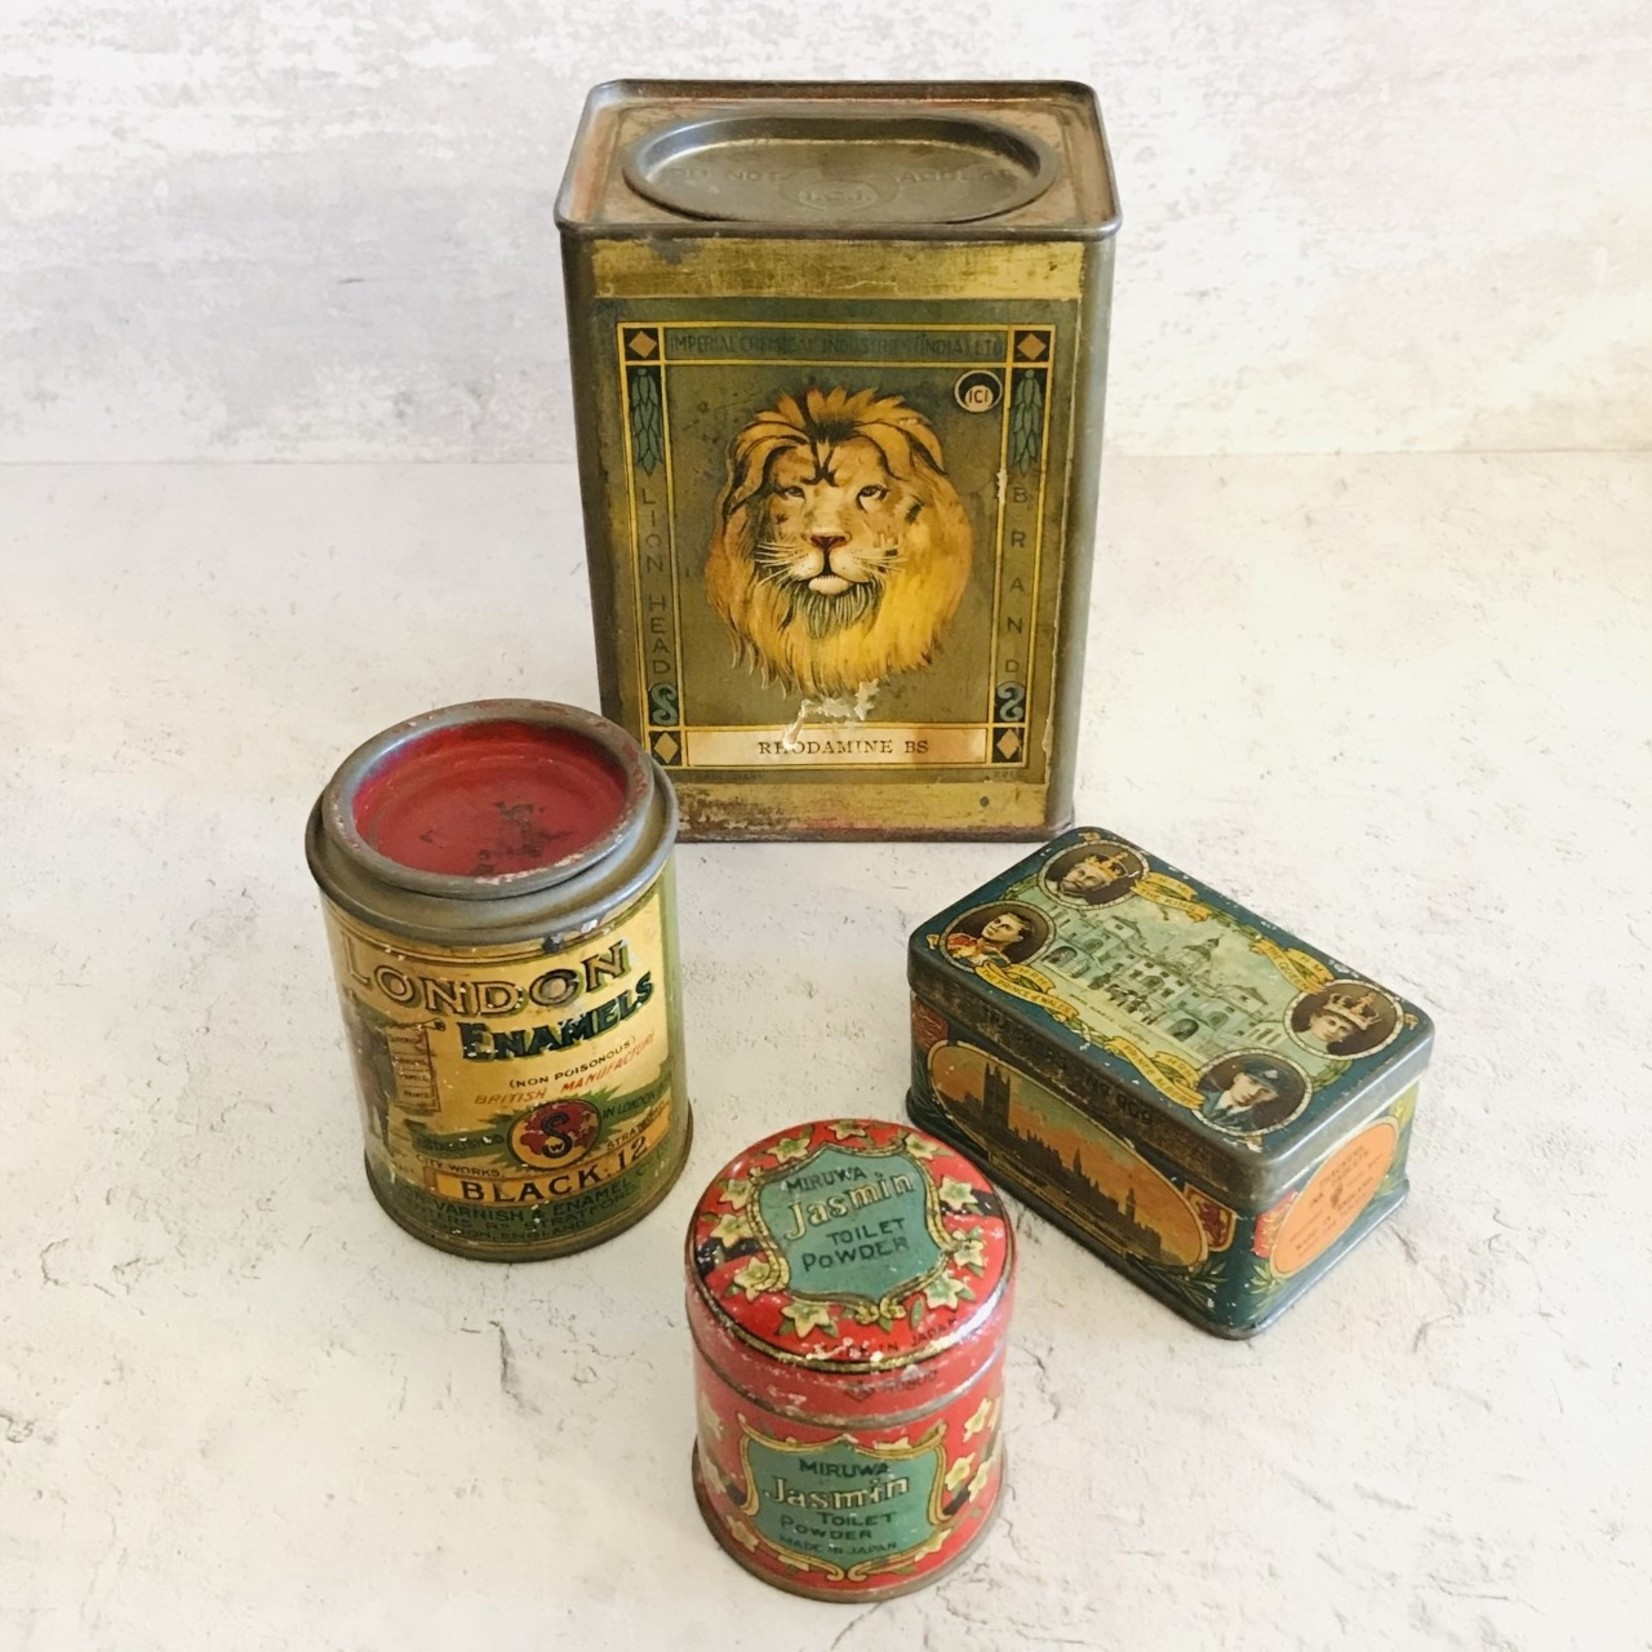 Vintage England Ink Tablets Container